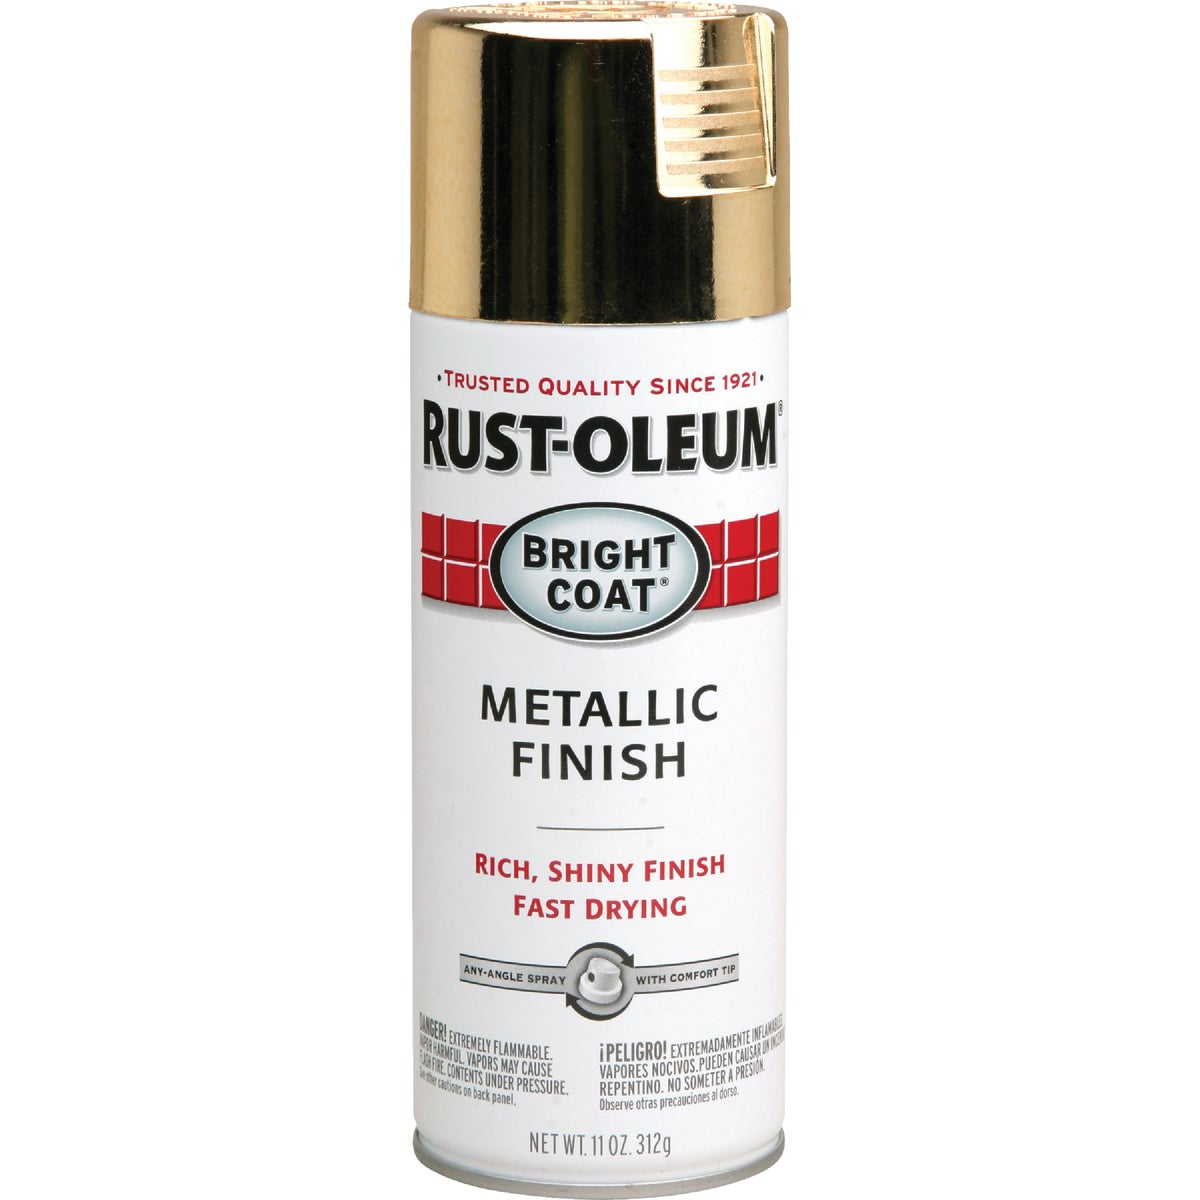 GOLD MTLC SPRAY PAINT - 7710-830 by Rustoleum